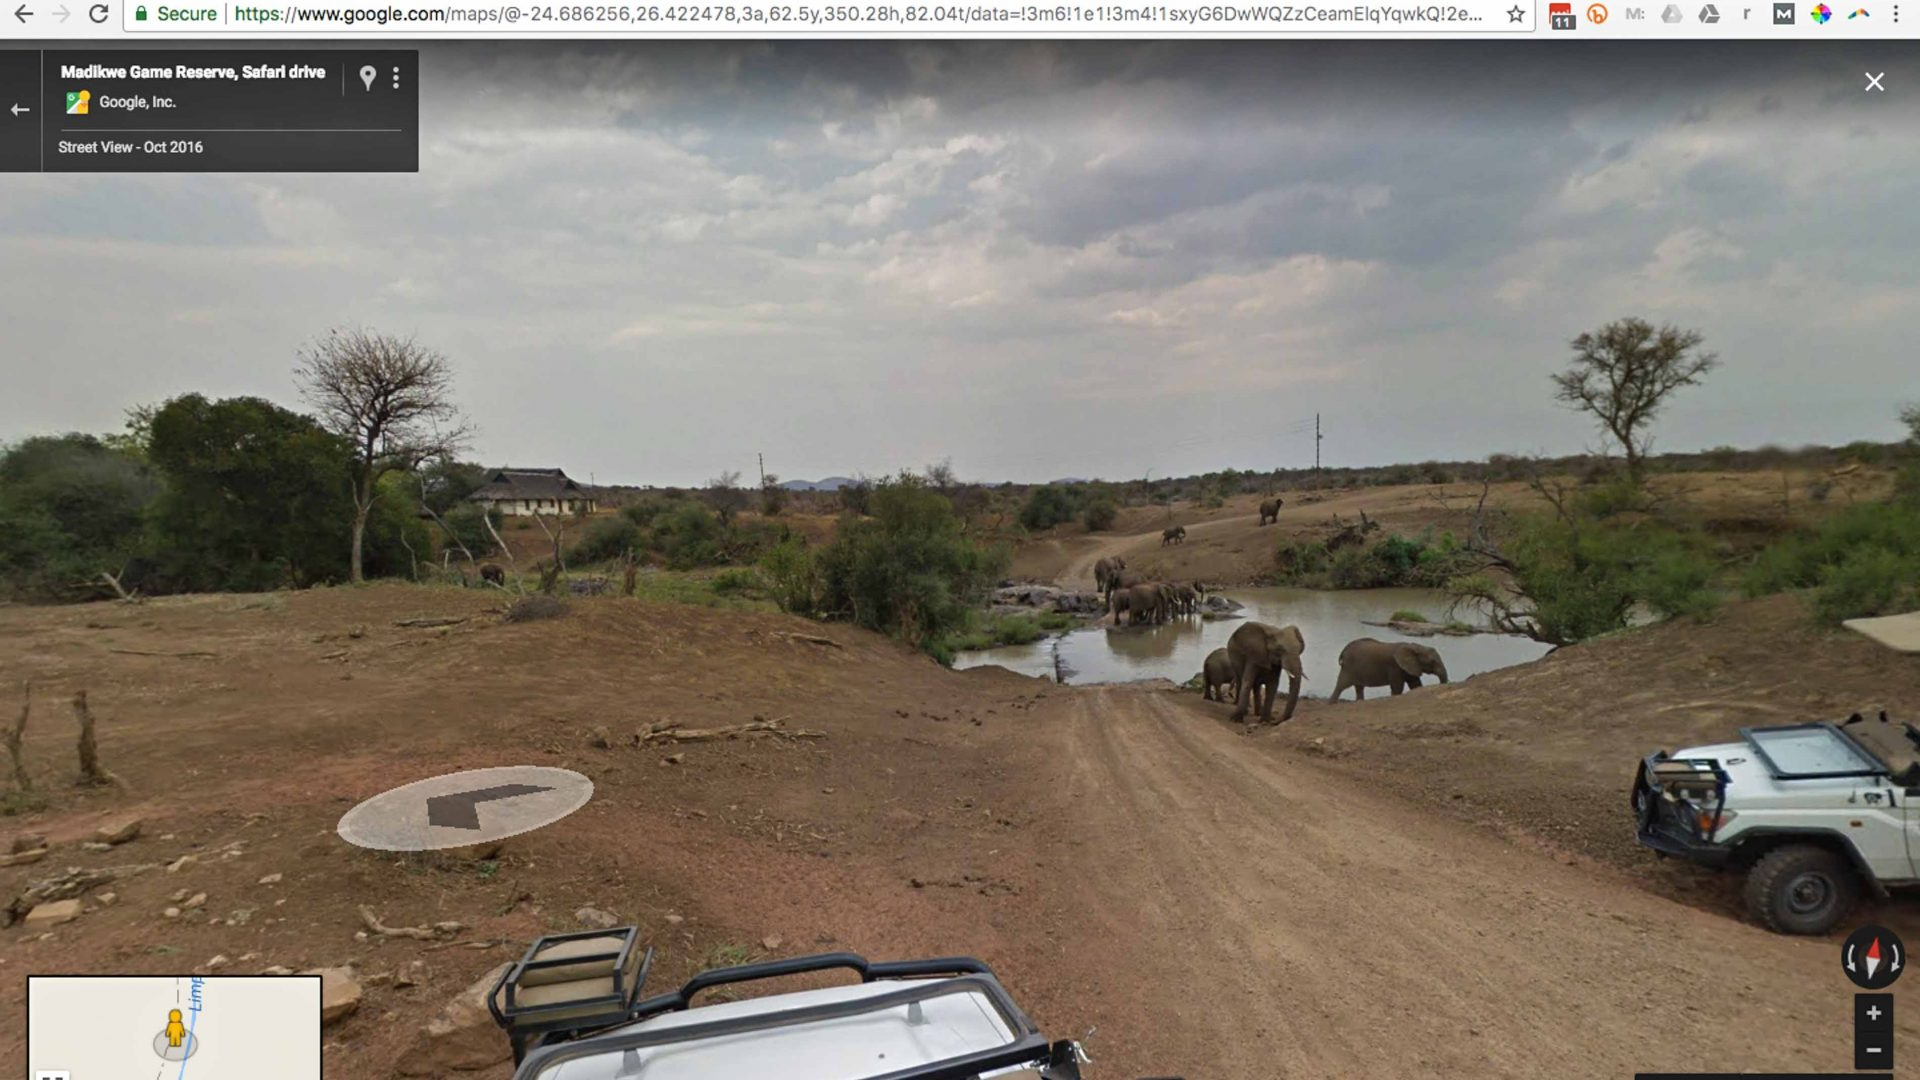 Google Street View screenshot showing safari-goers watching a family of elephants as they cross the Limpopo River in the Madikwe Game Reserve in South Africa.